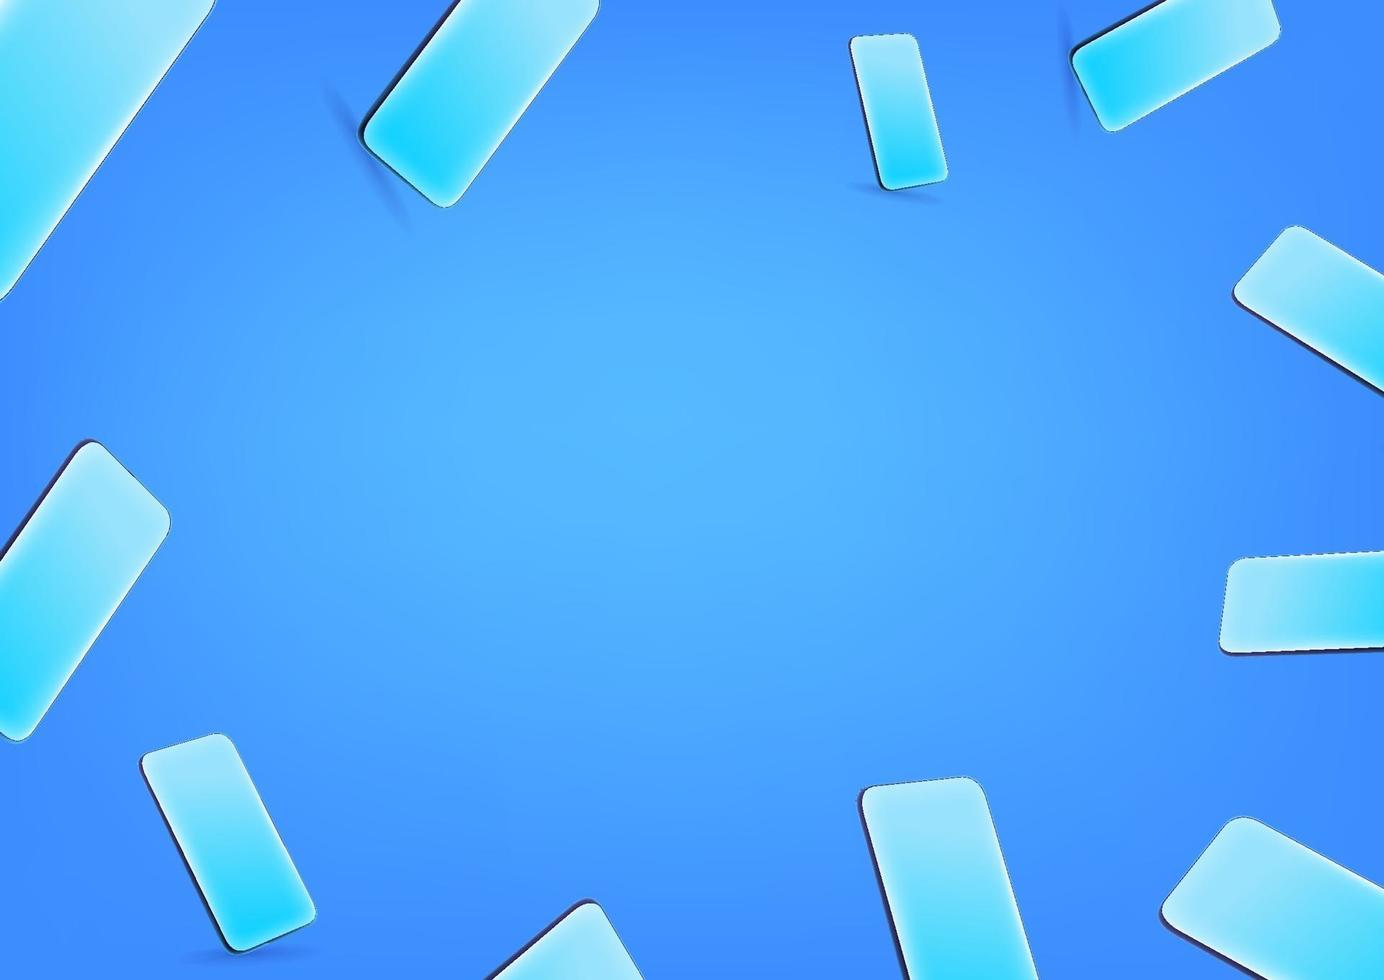 Blue Wallpaper With Modern Smartphones. Social Media Message Vector  Background. Copy Space For A Text 2218678 Vector Art At Vecteezy